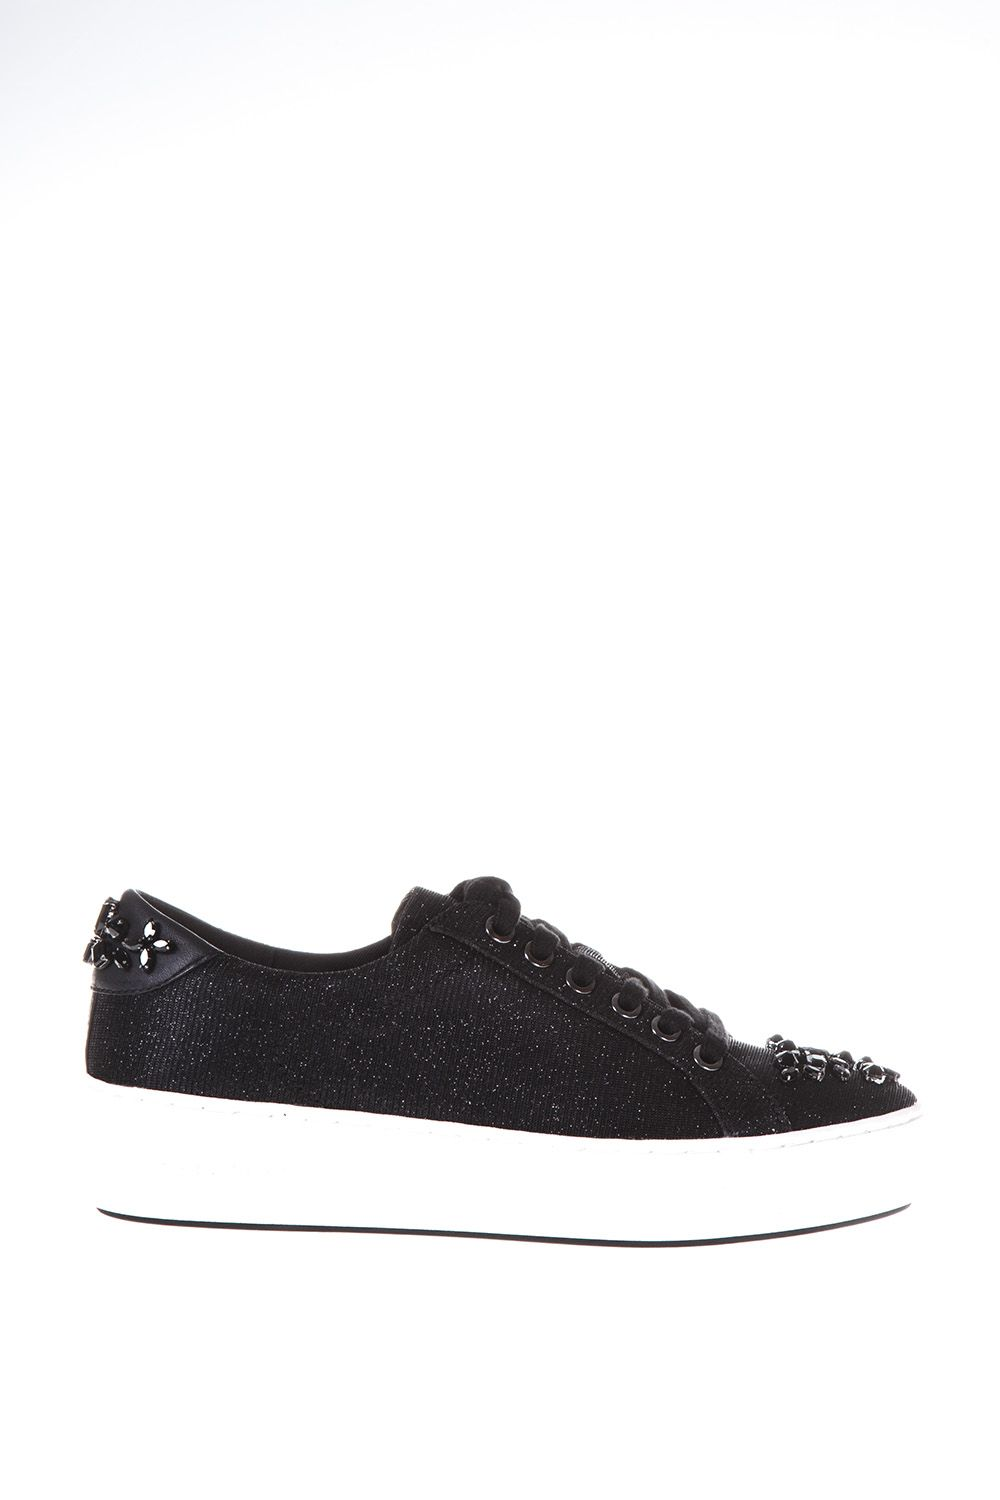 MICHAEL Michael Kors Embroidered Poppy Sneakers